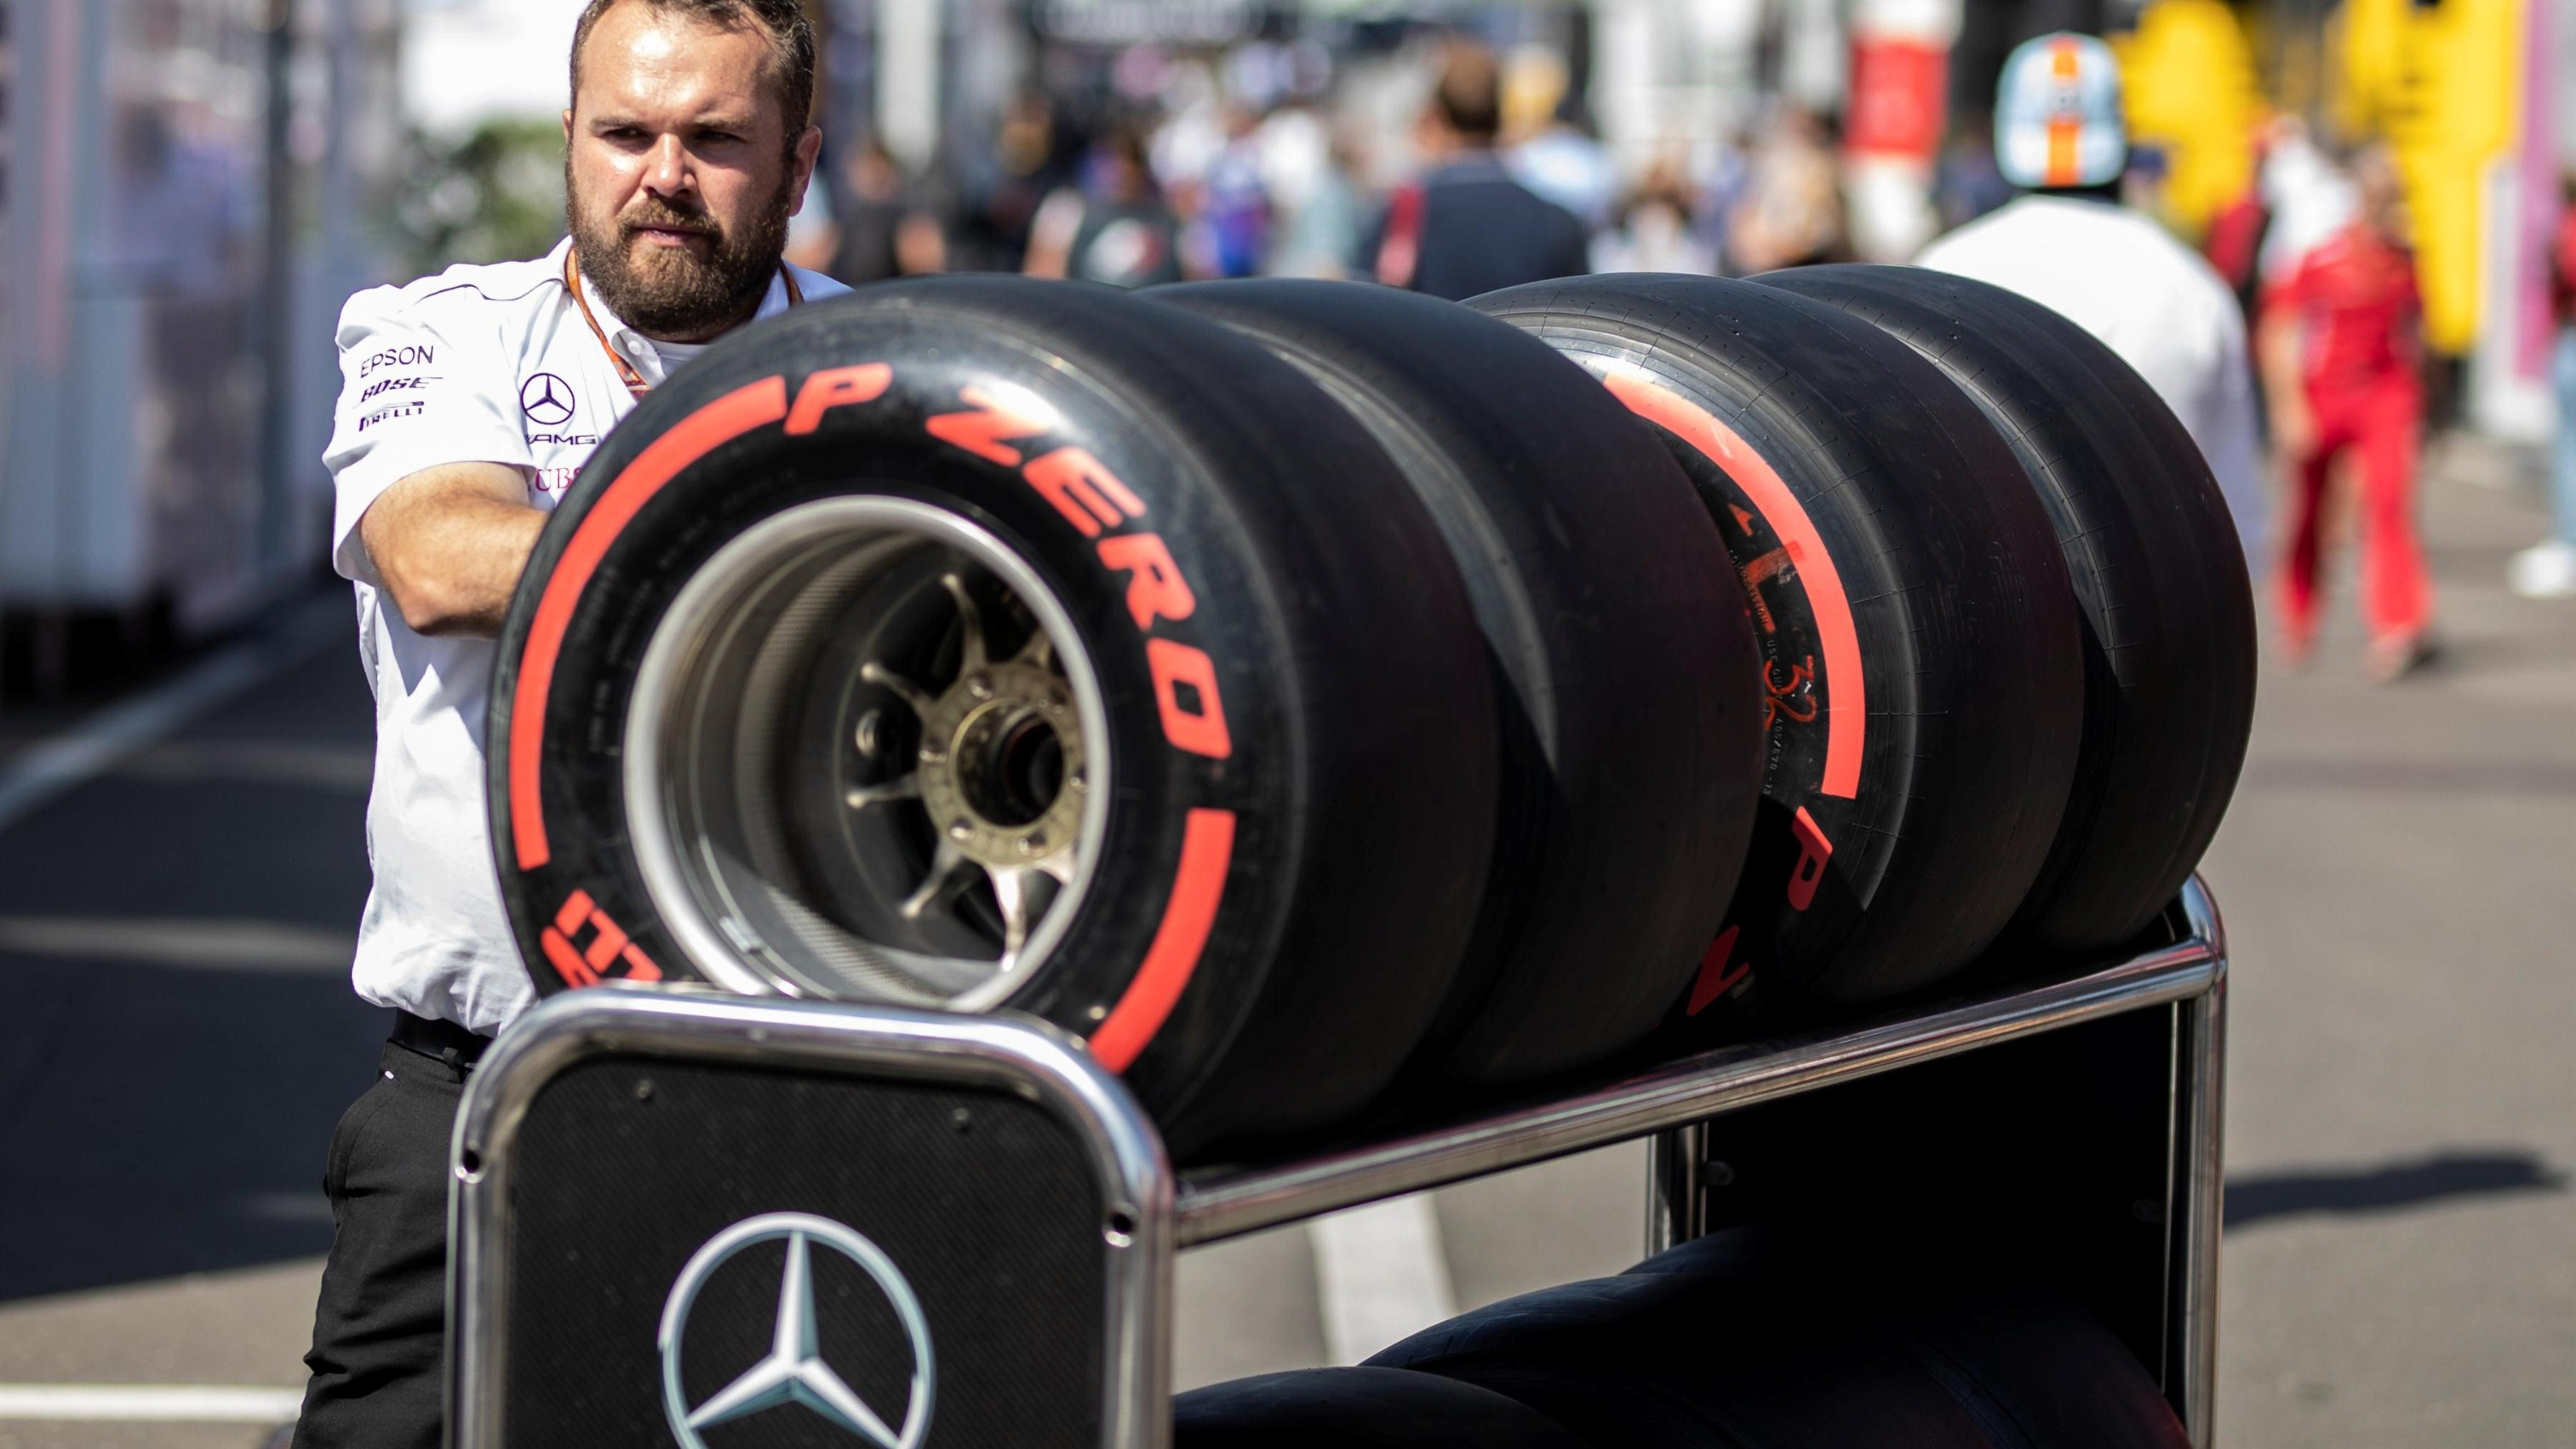 TAB: The punters guide to the Italian Formula 1 Grand Prix